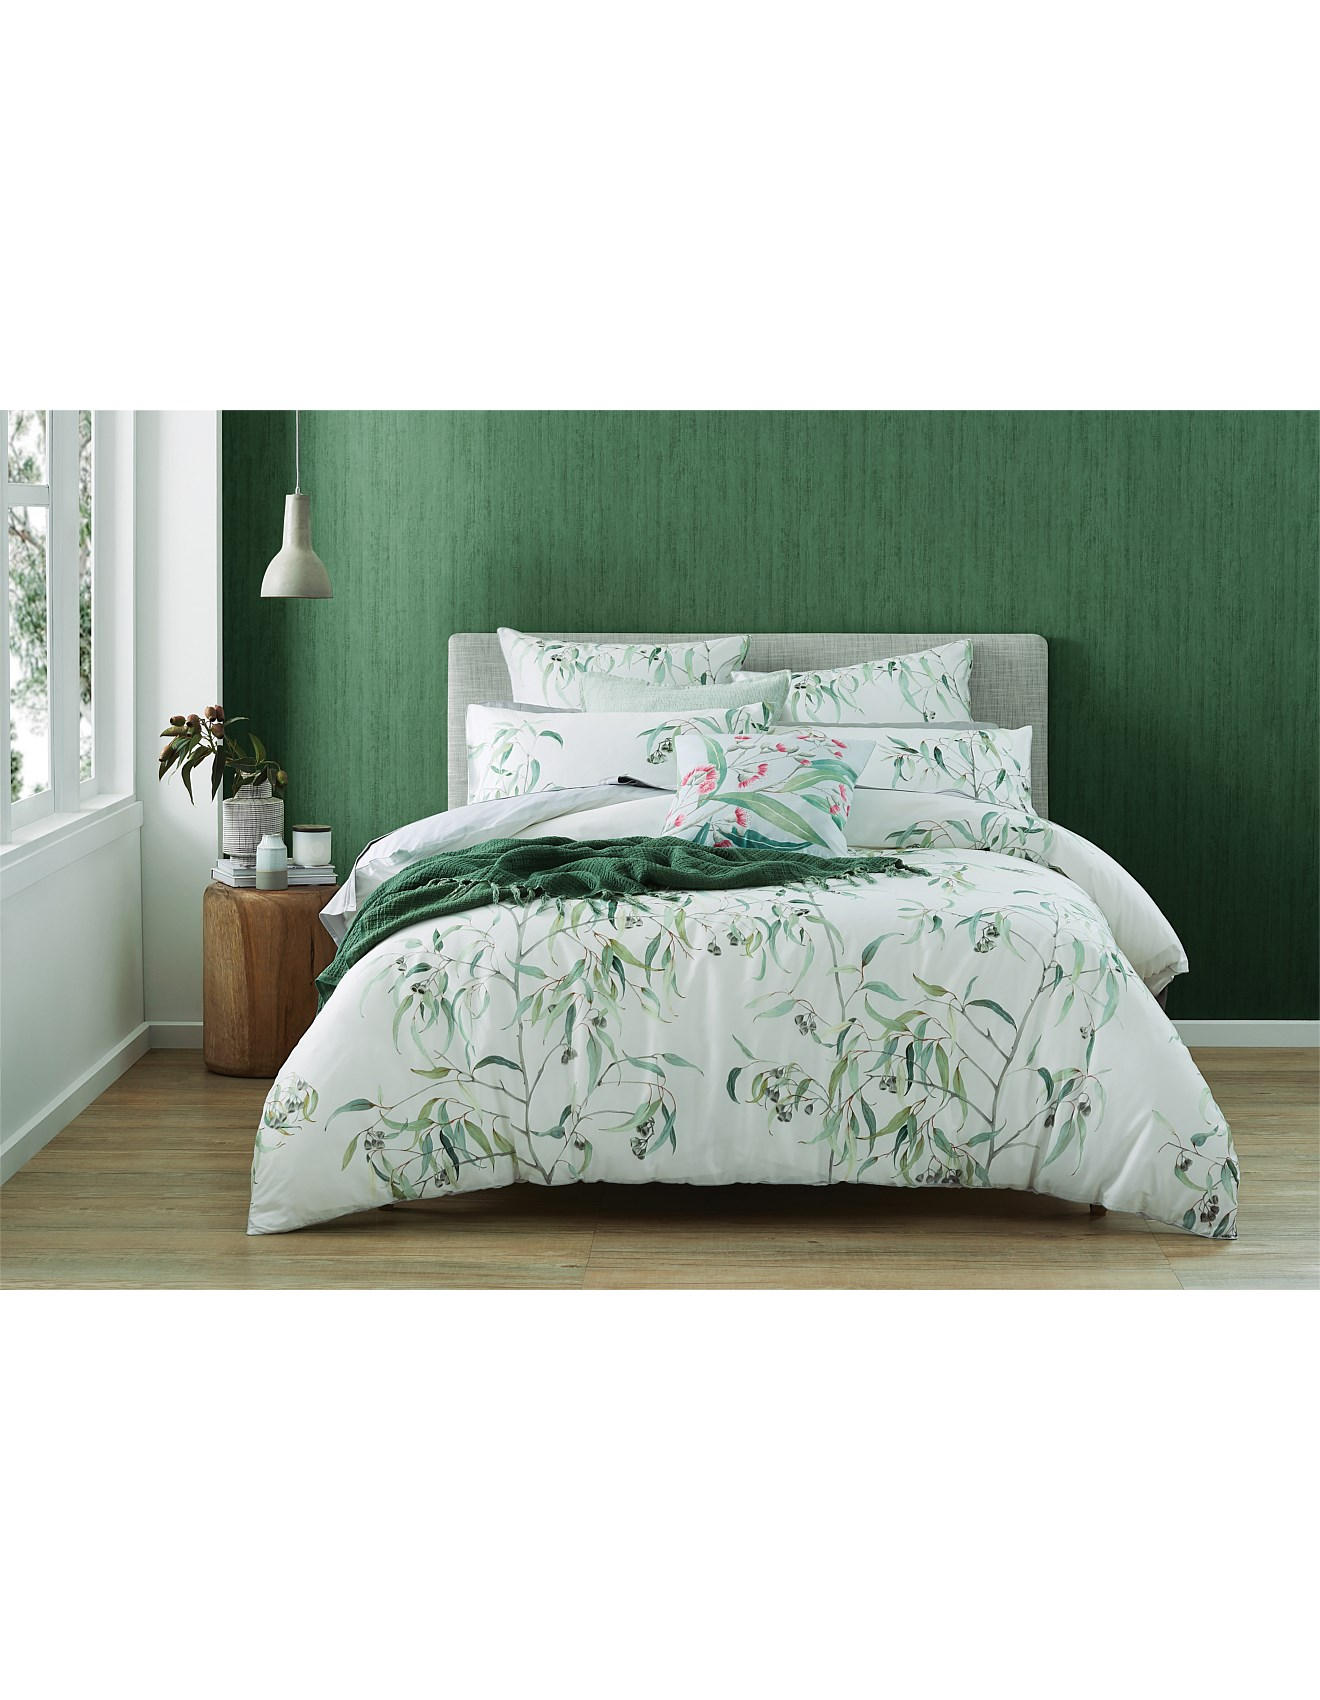 Single Doona Cover Bed Linen Eucalyptus Single Bed Quilt Cover